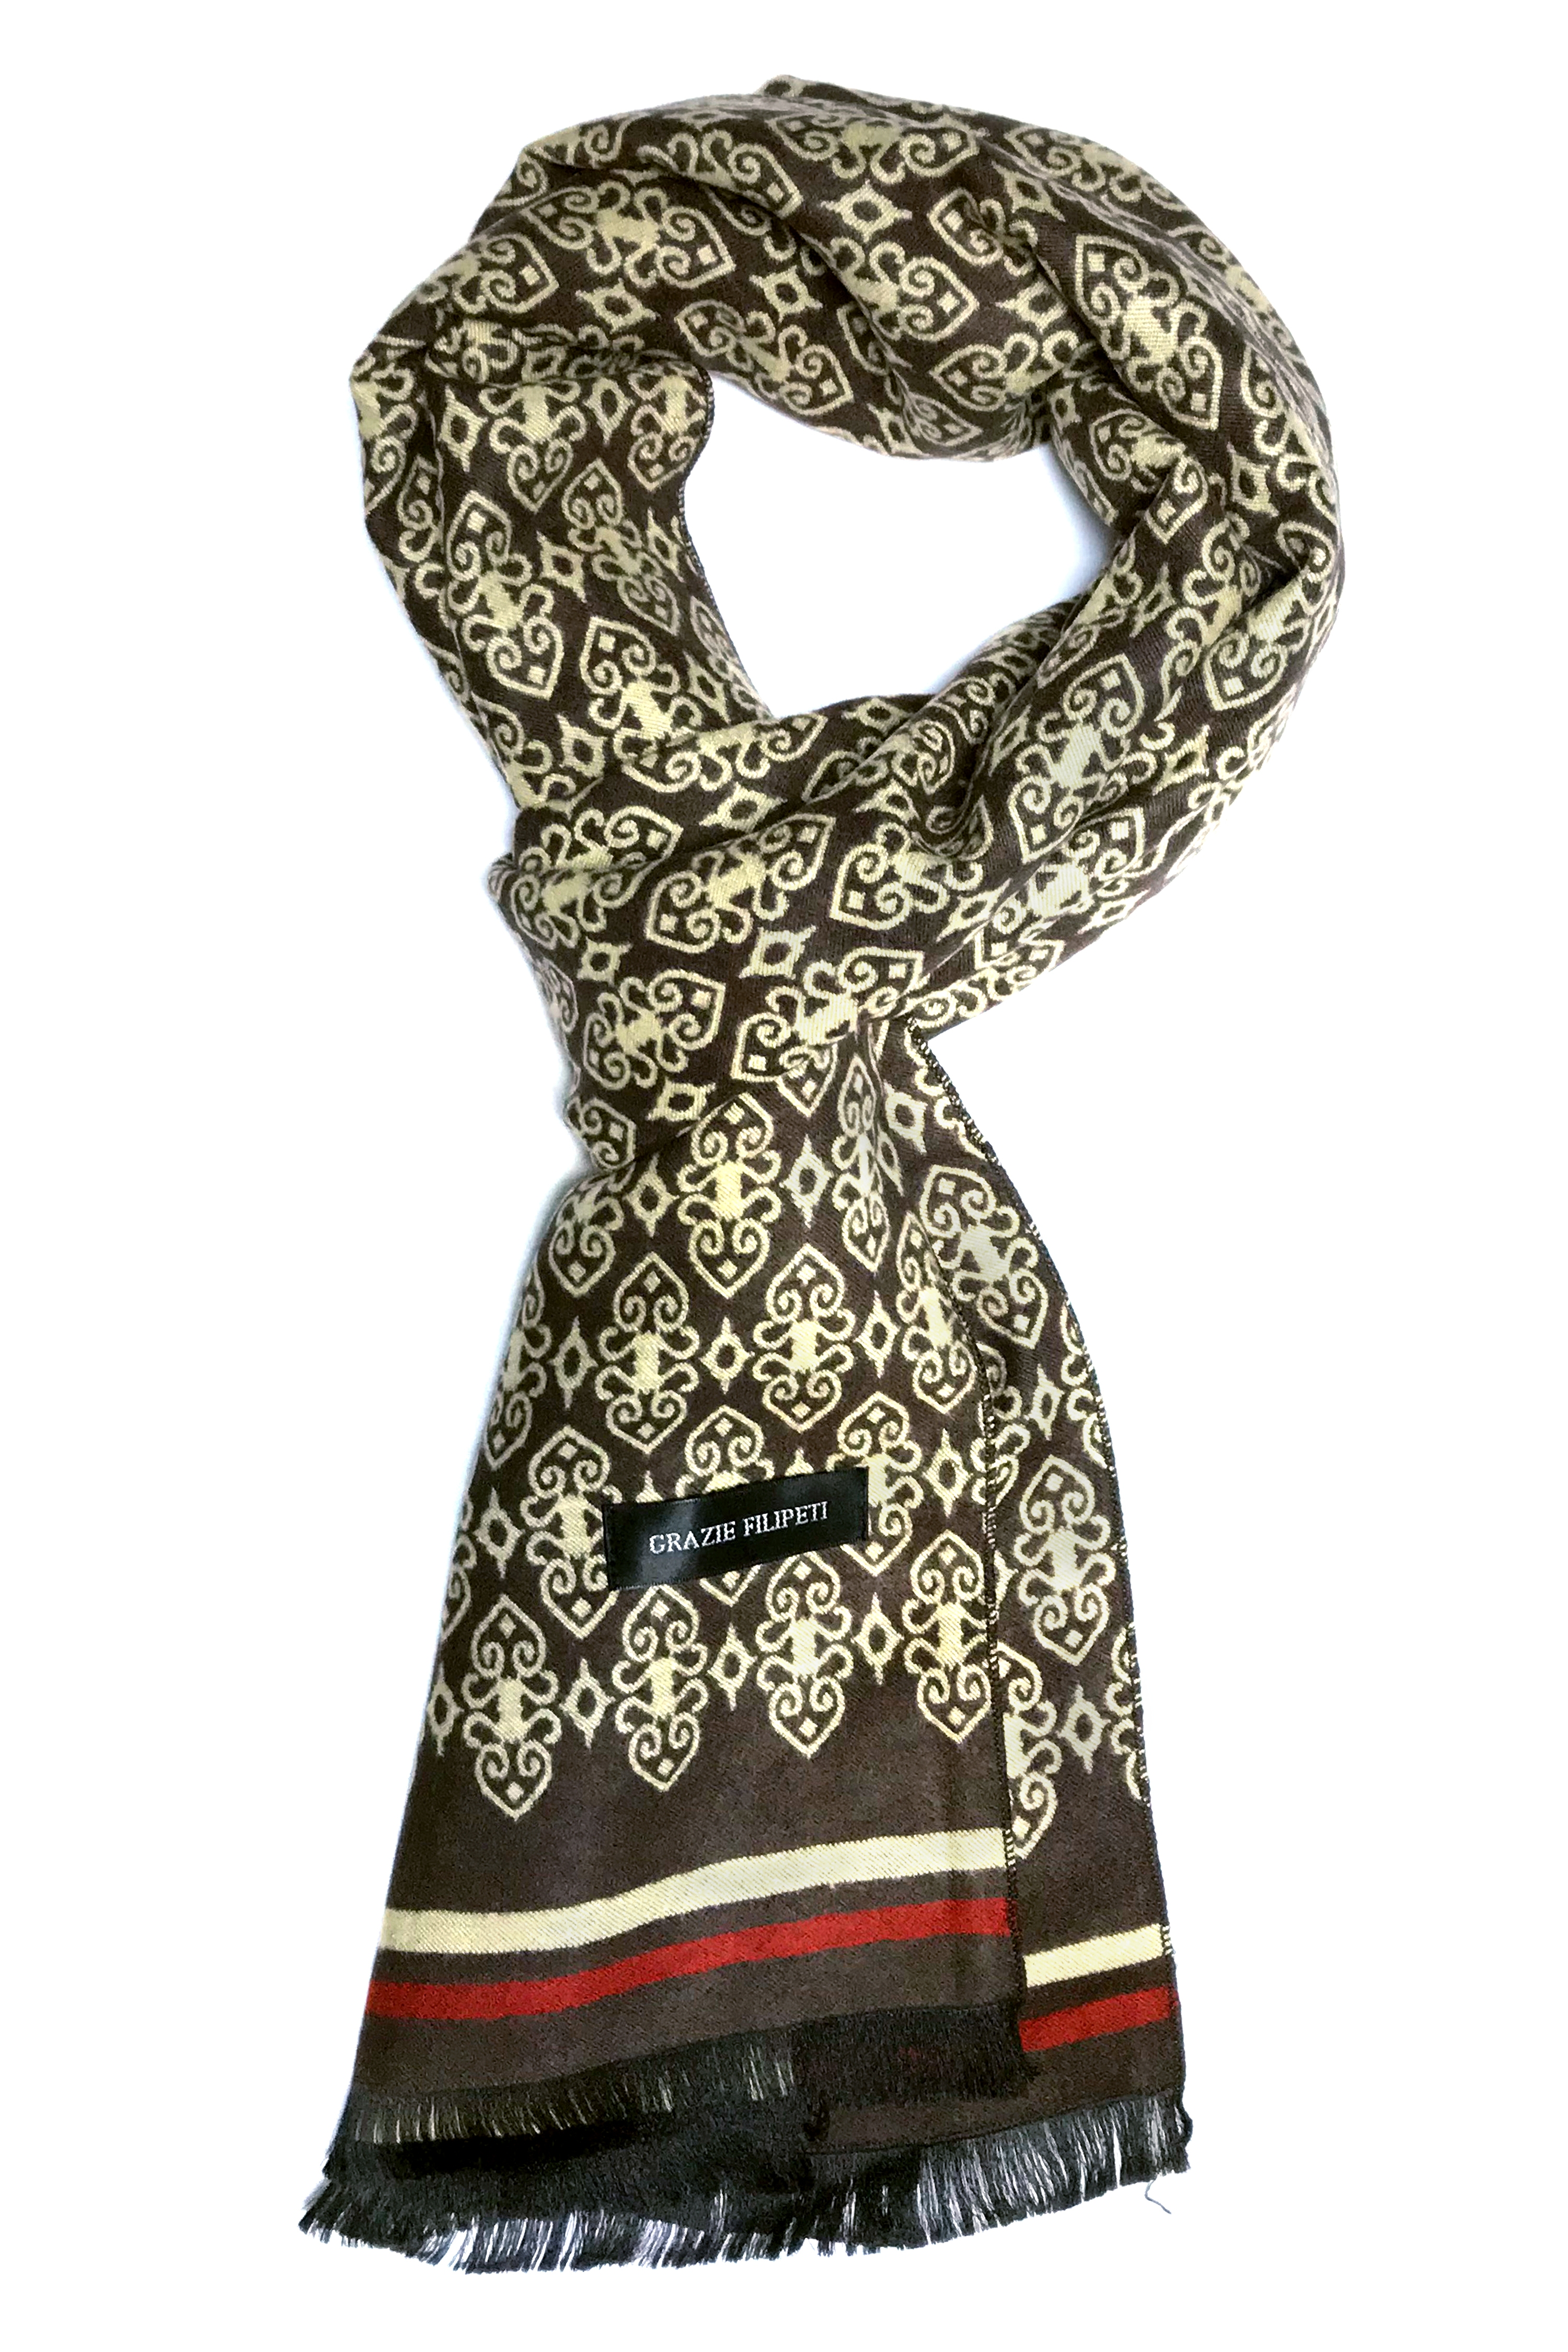 fdc096fe1 Cashmere scarf with brown & ivory models by Grazie Filipeti - GRAZIE ...